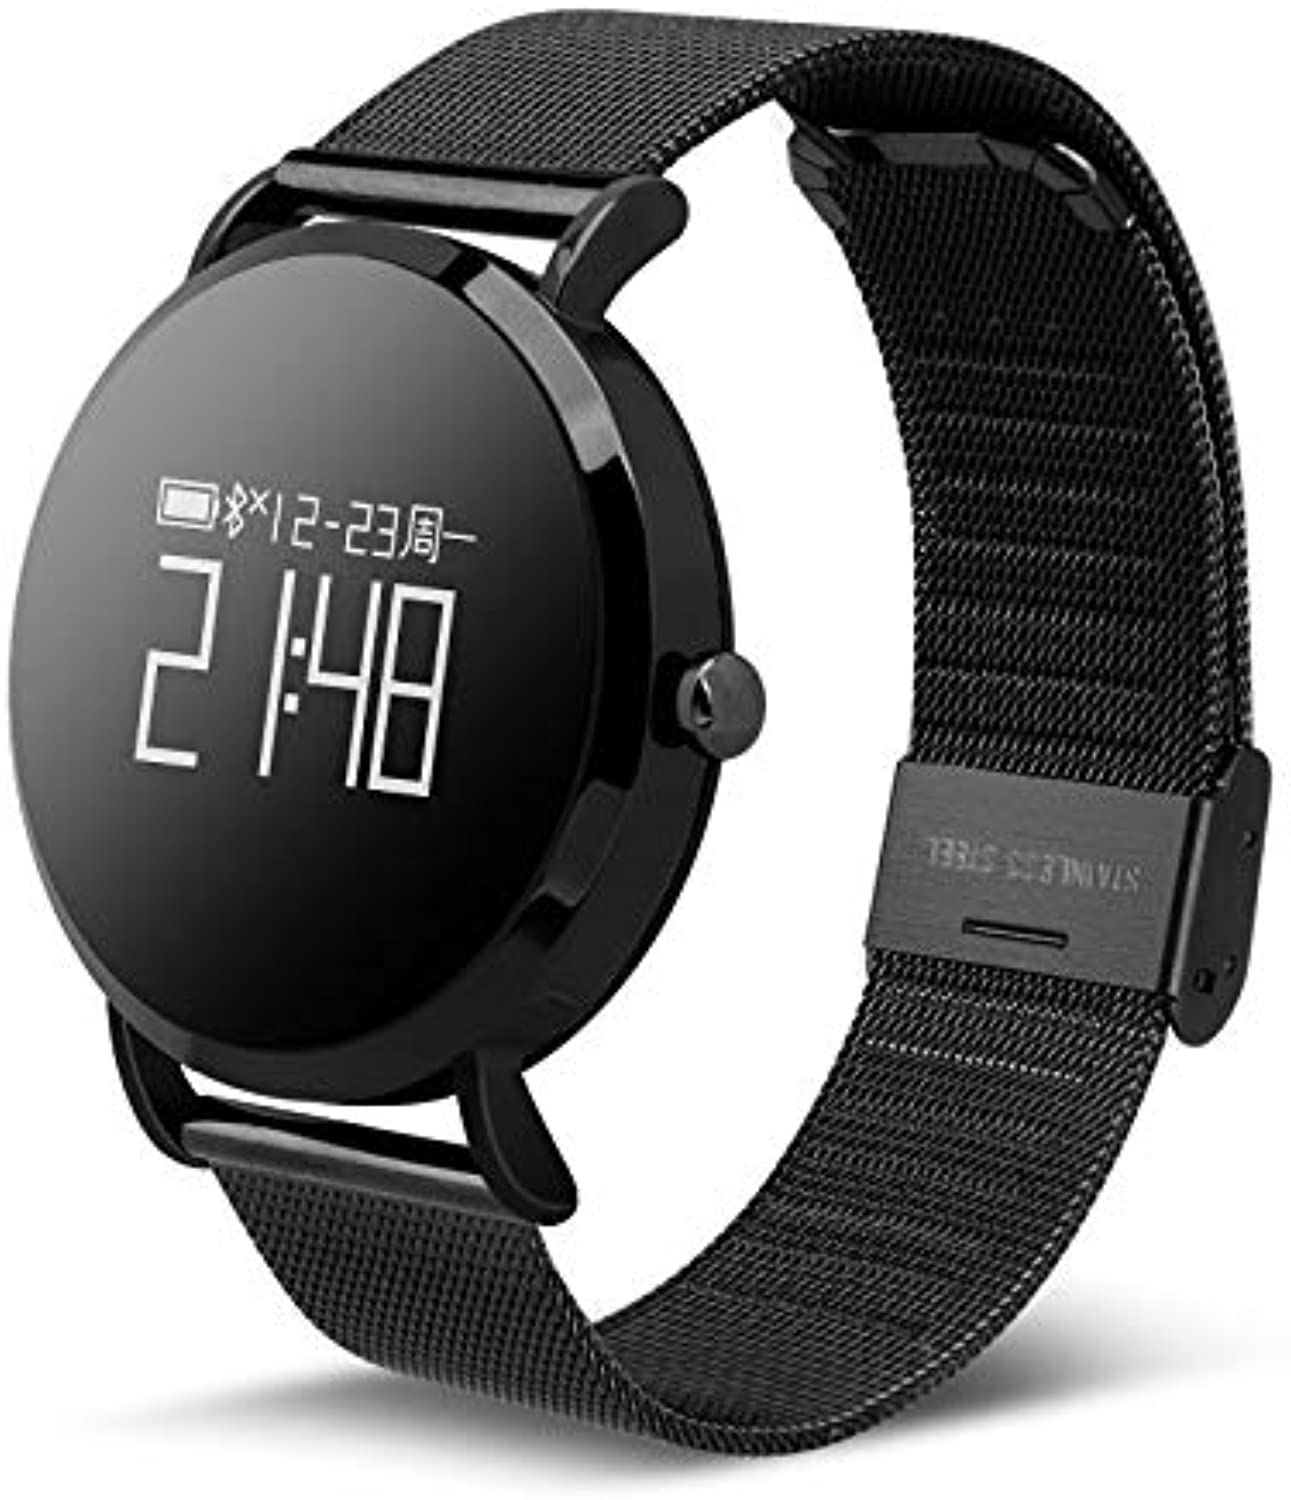 blueeetooth Smartwatch, Fitness Tracker Watch Activity Tracker with Heart Rate Monitor Pedometer Step Calorie Counter SMS Call Notification Waterproof IP67 for iOS Android,Black